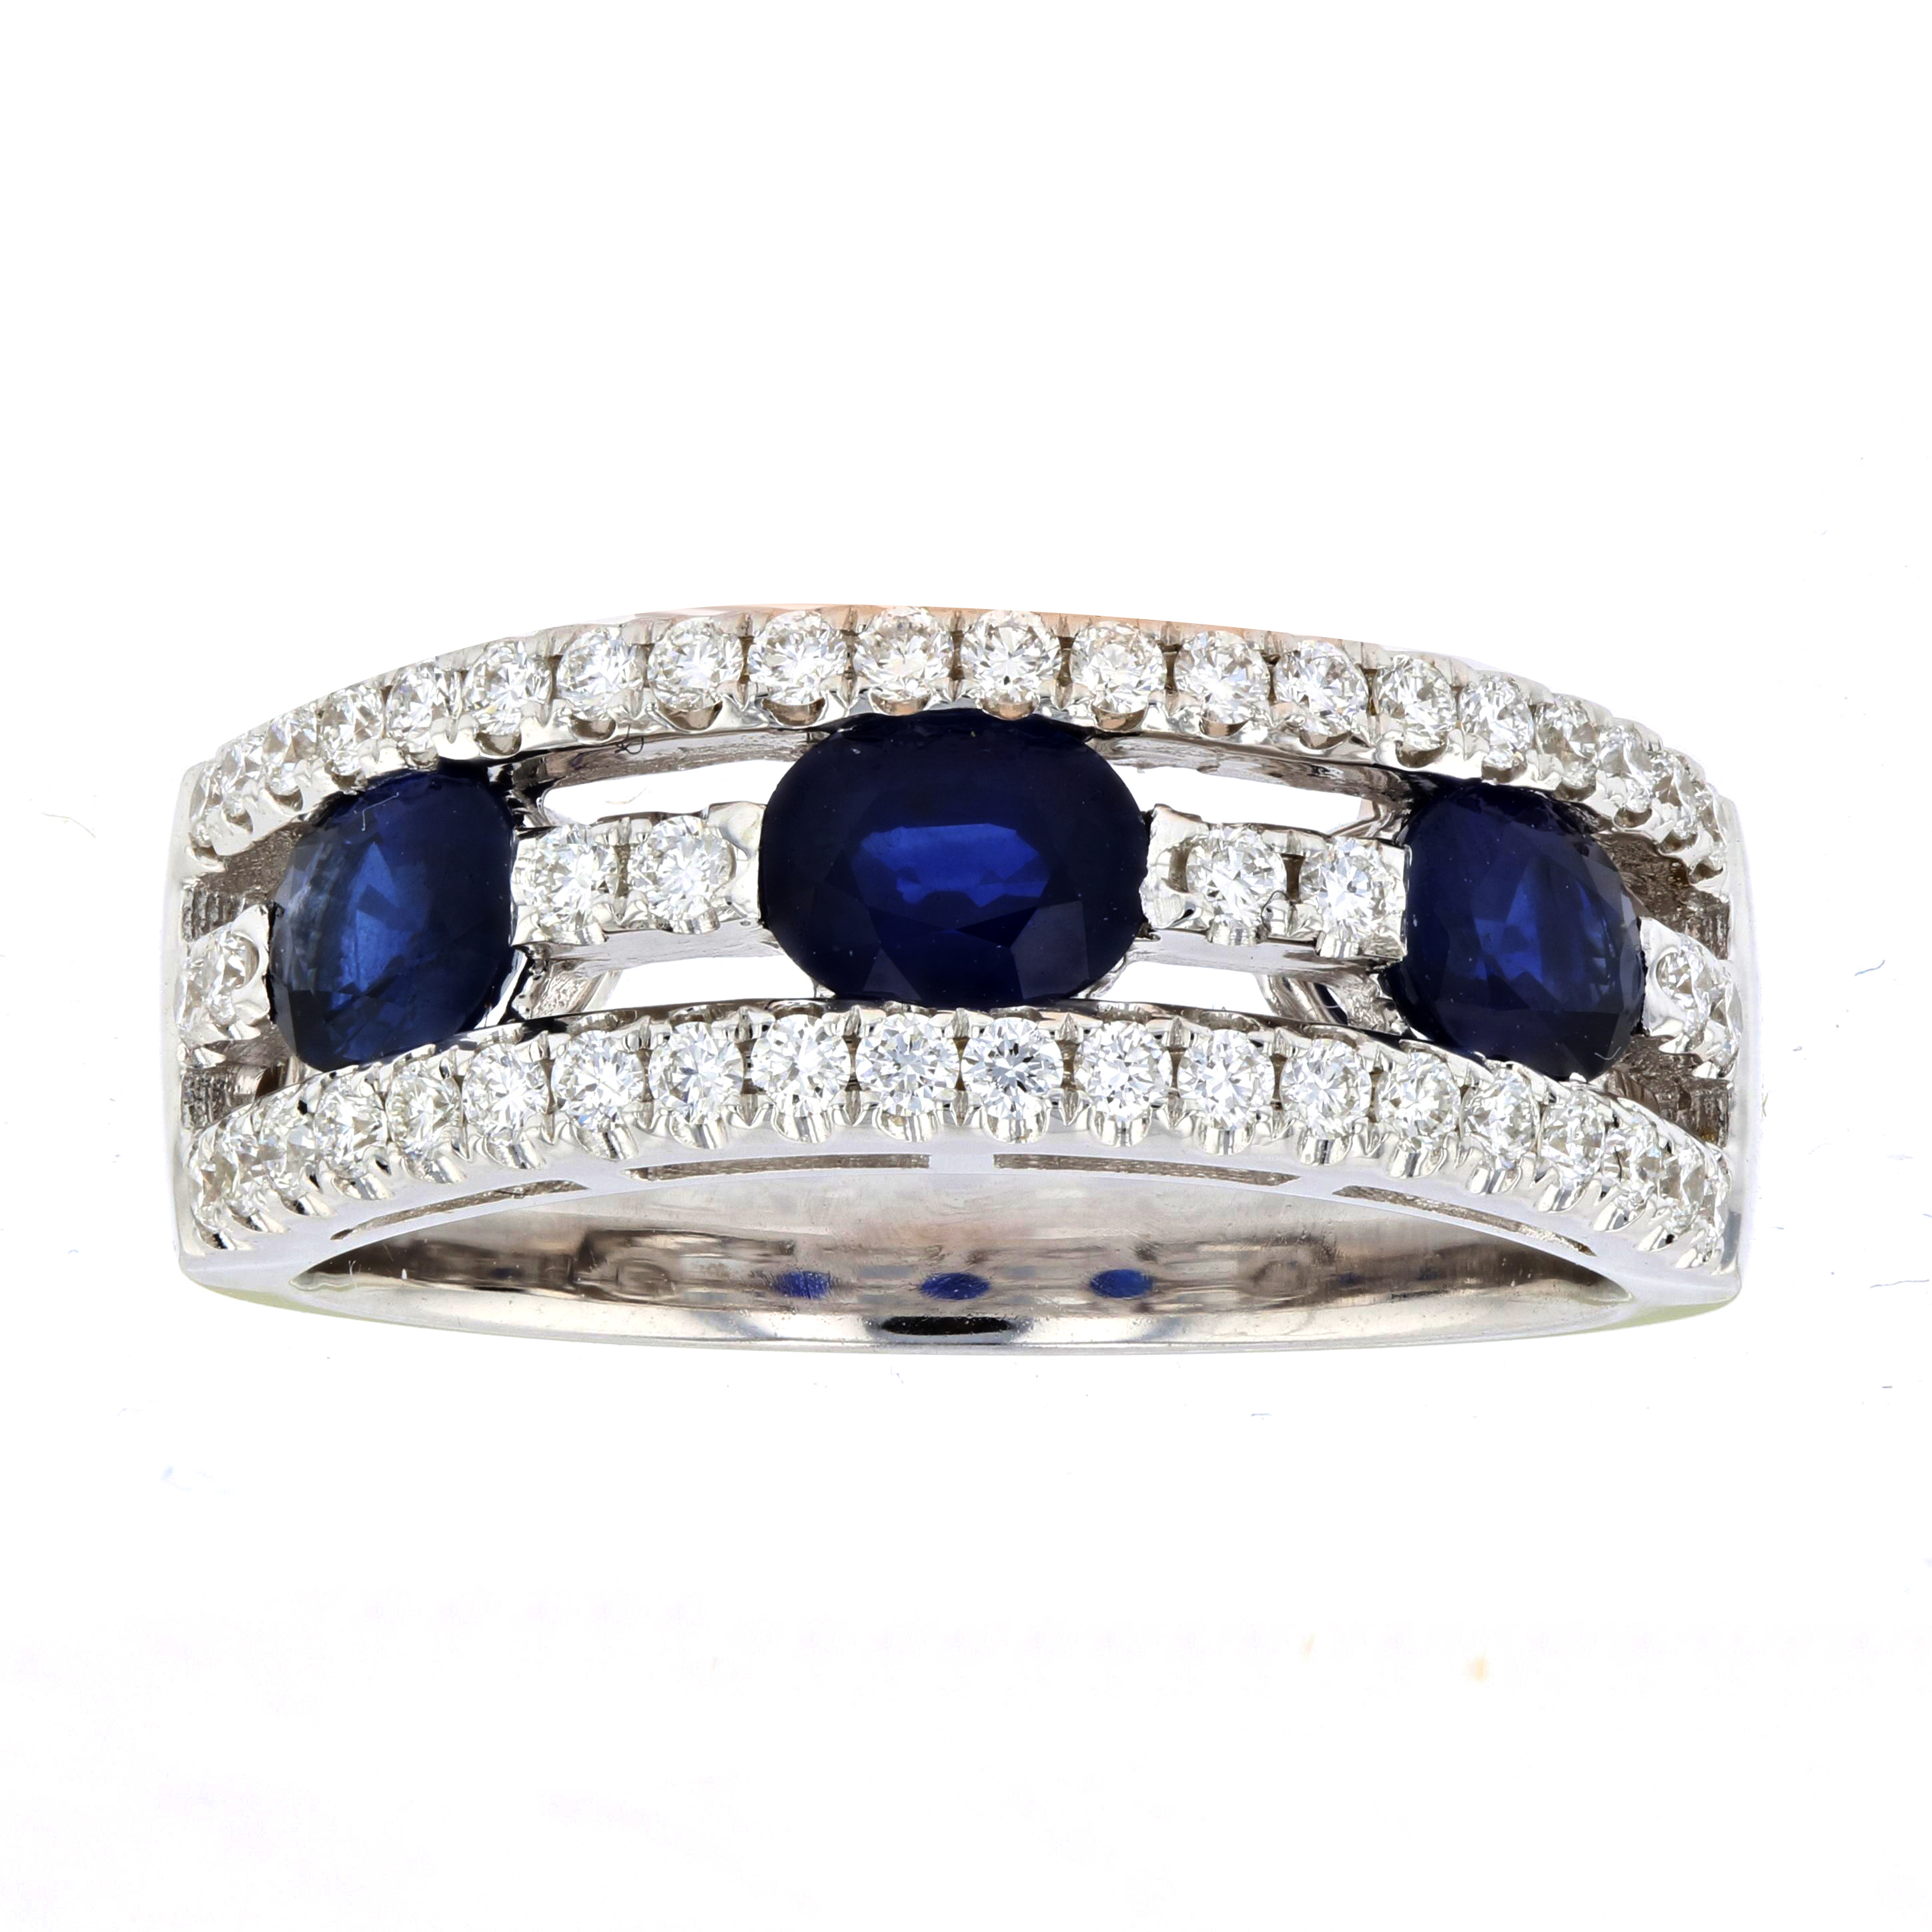 View 1.77ctw Diamond and Sapphire Ring in 18k White Gold